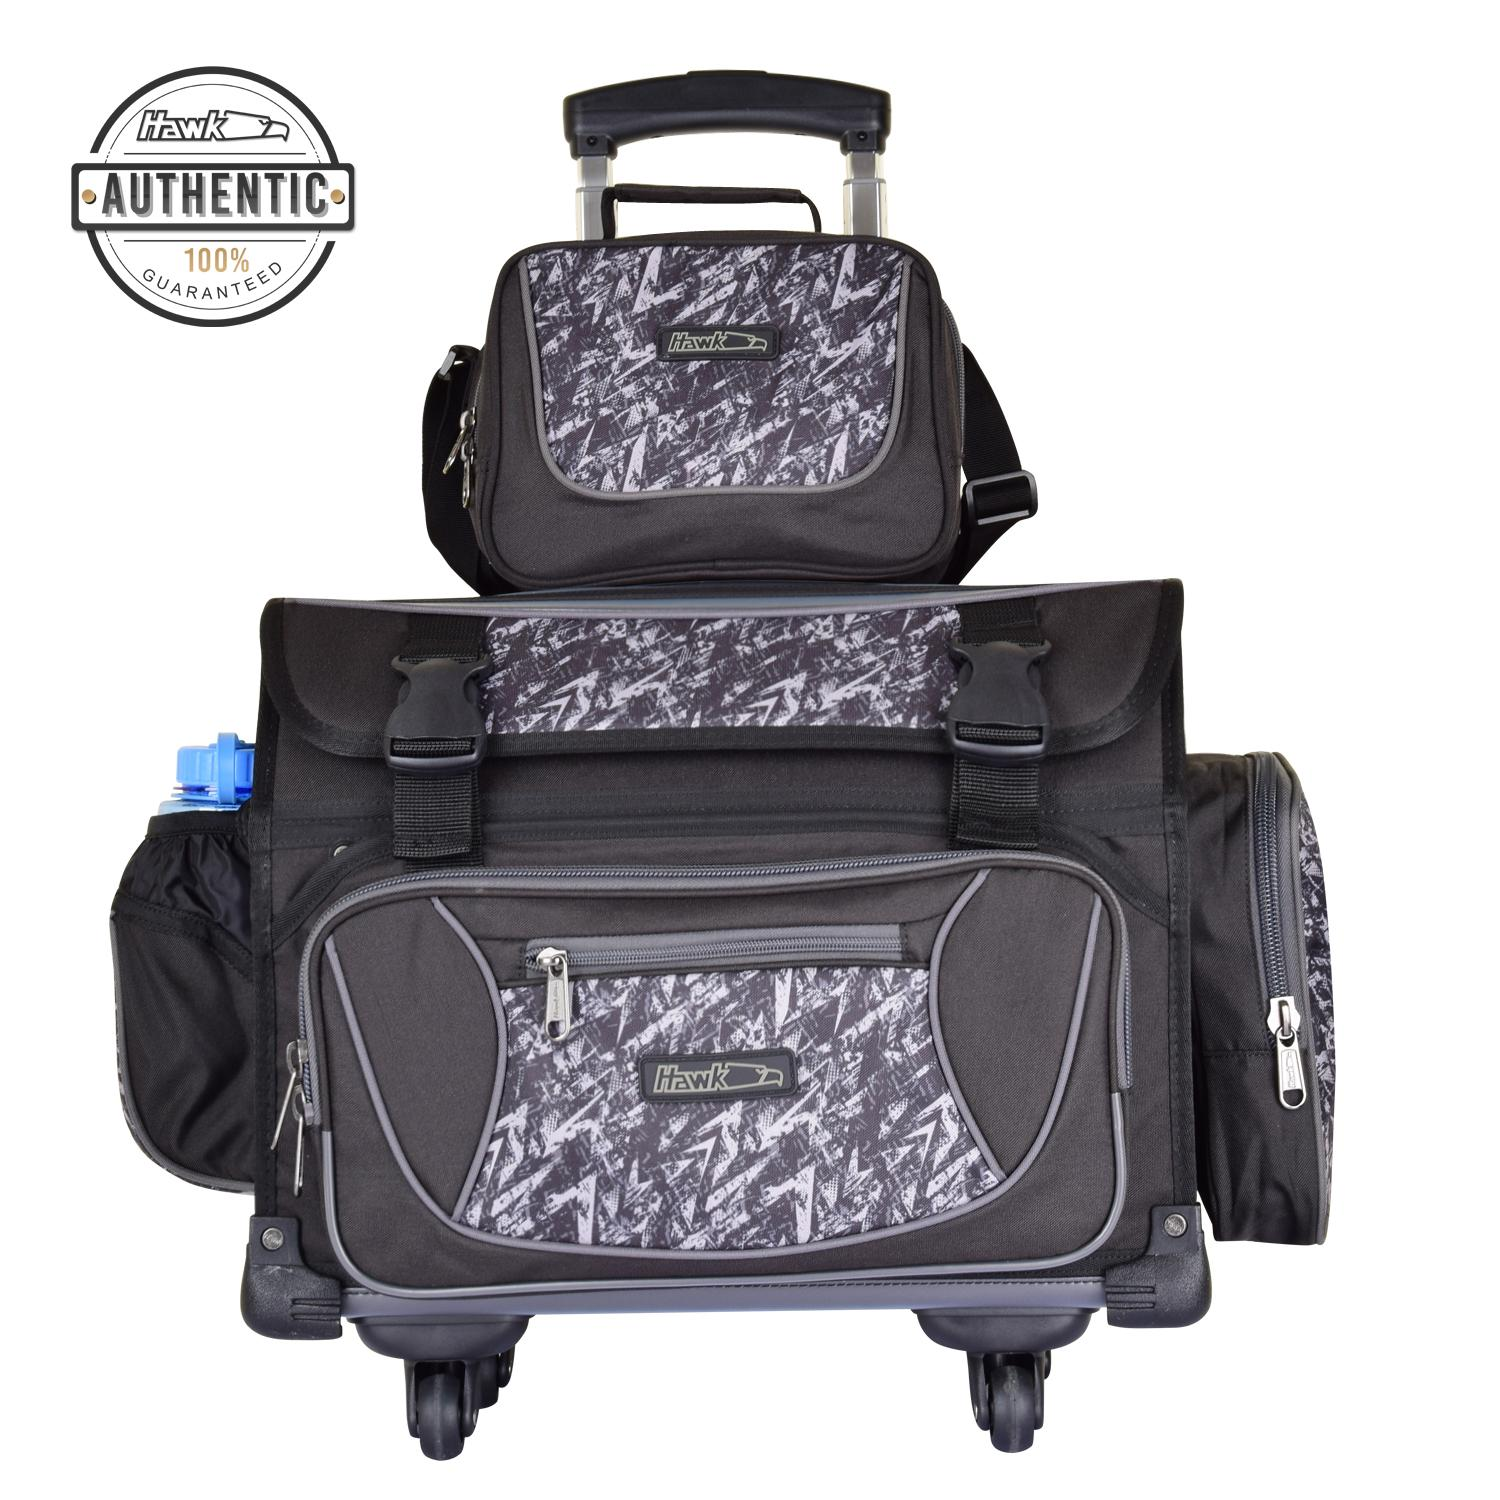 d4c65c463 Luggage for sale - Luggage Bag online brands